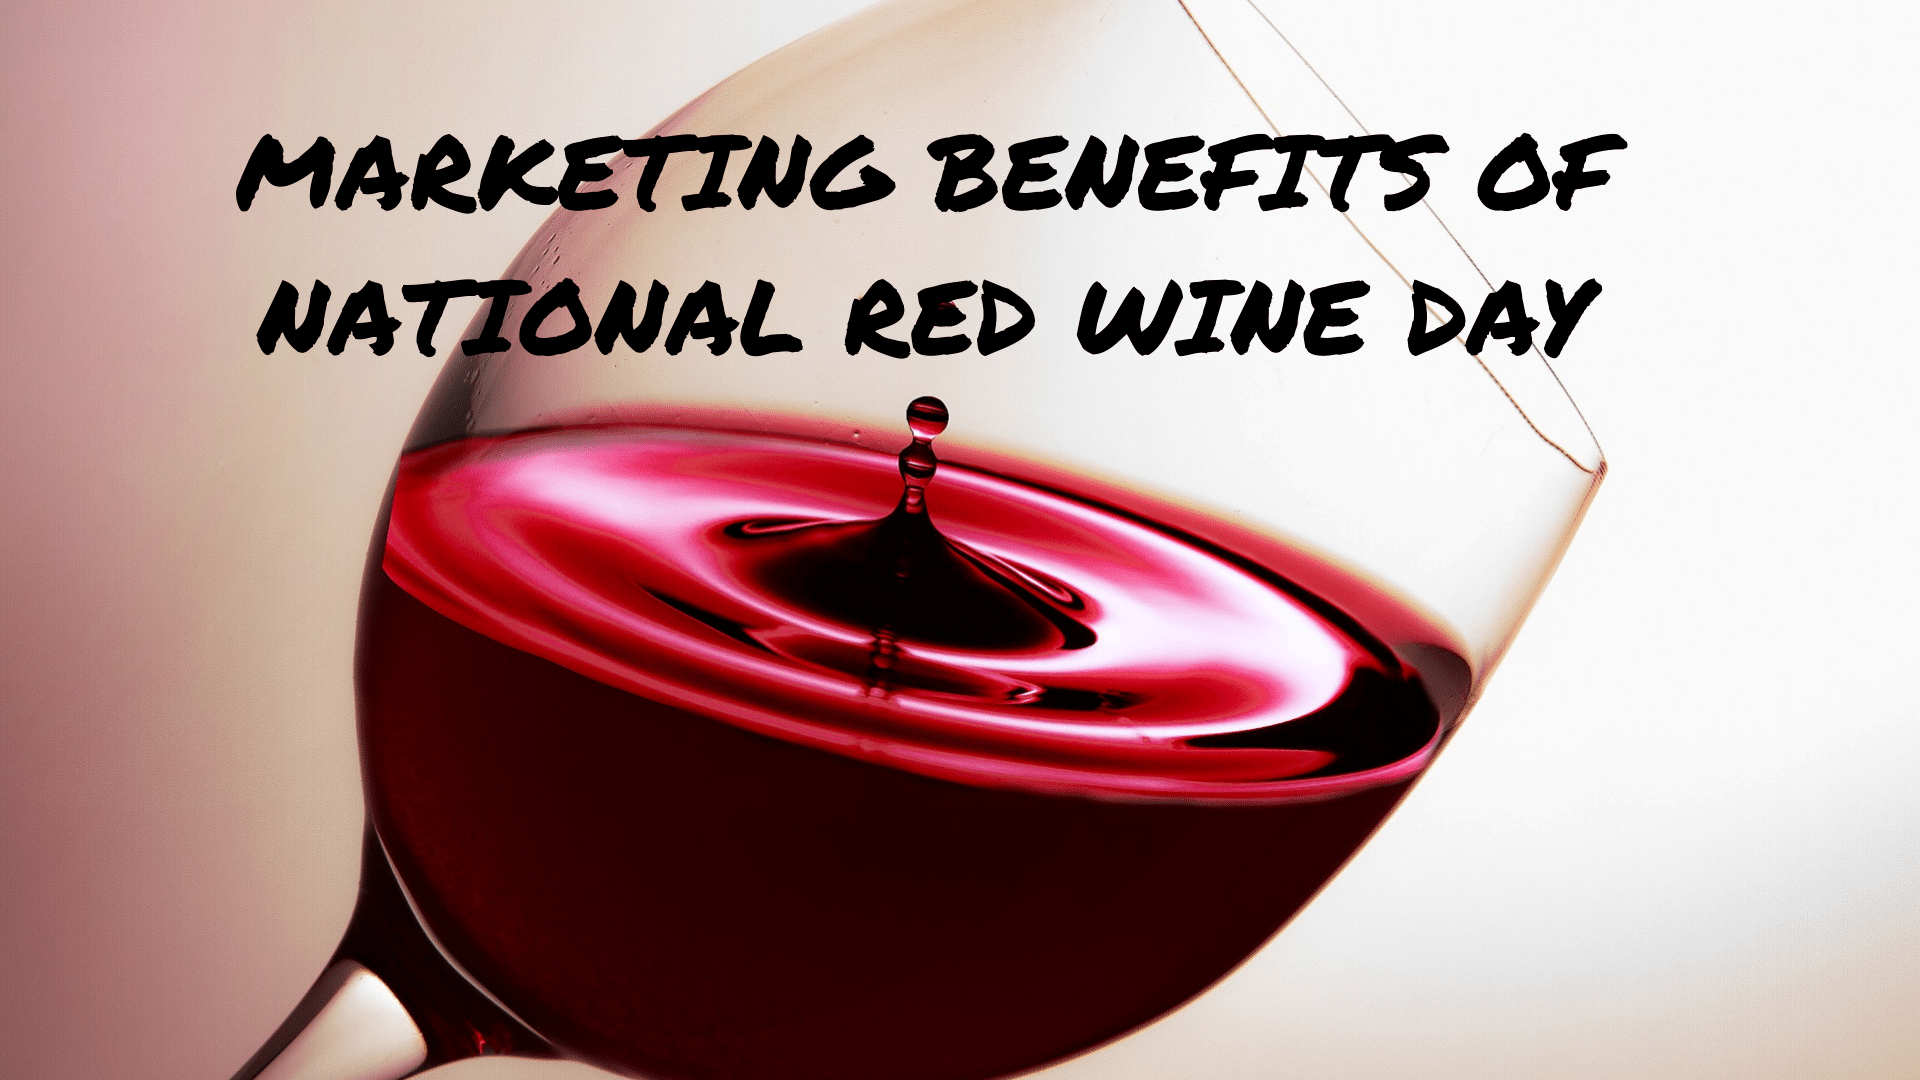 Marketing Benefits of National Red Wine Day